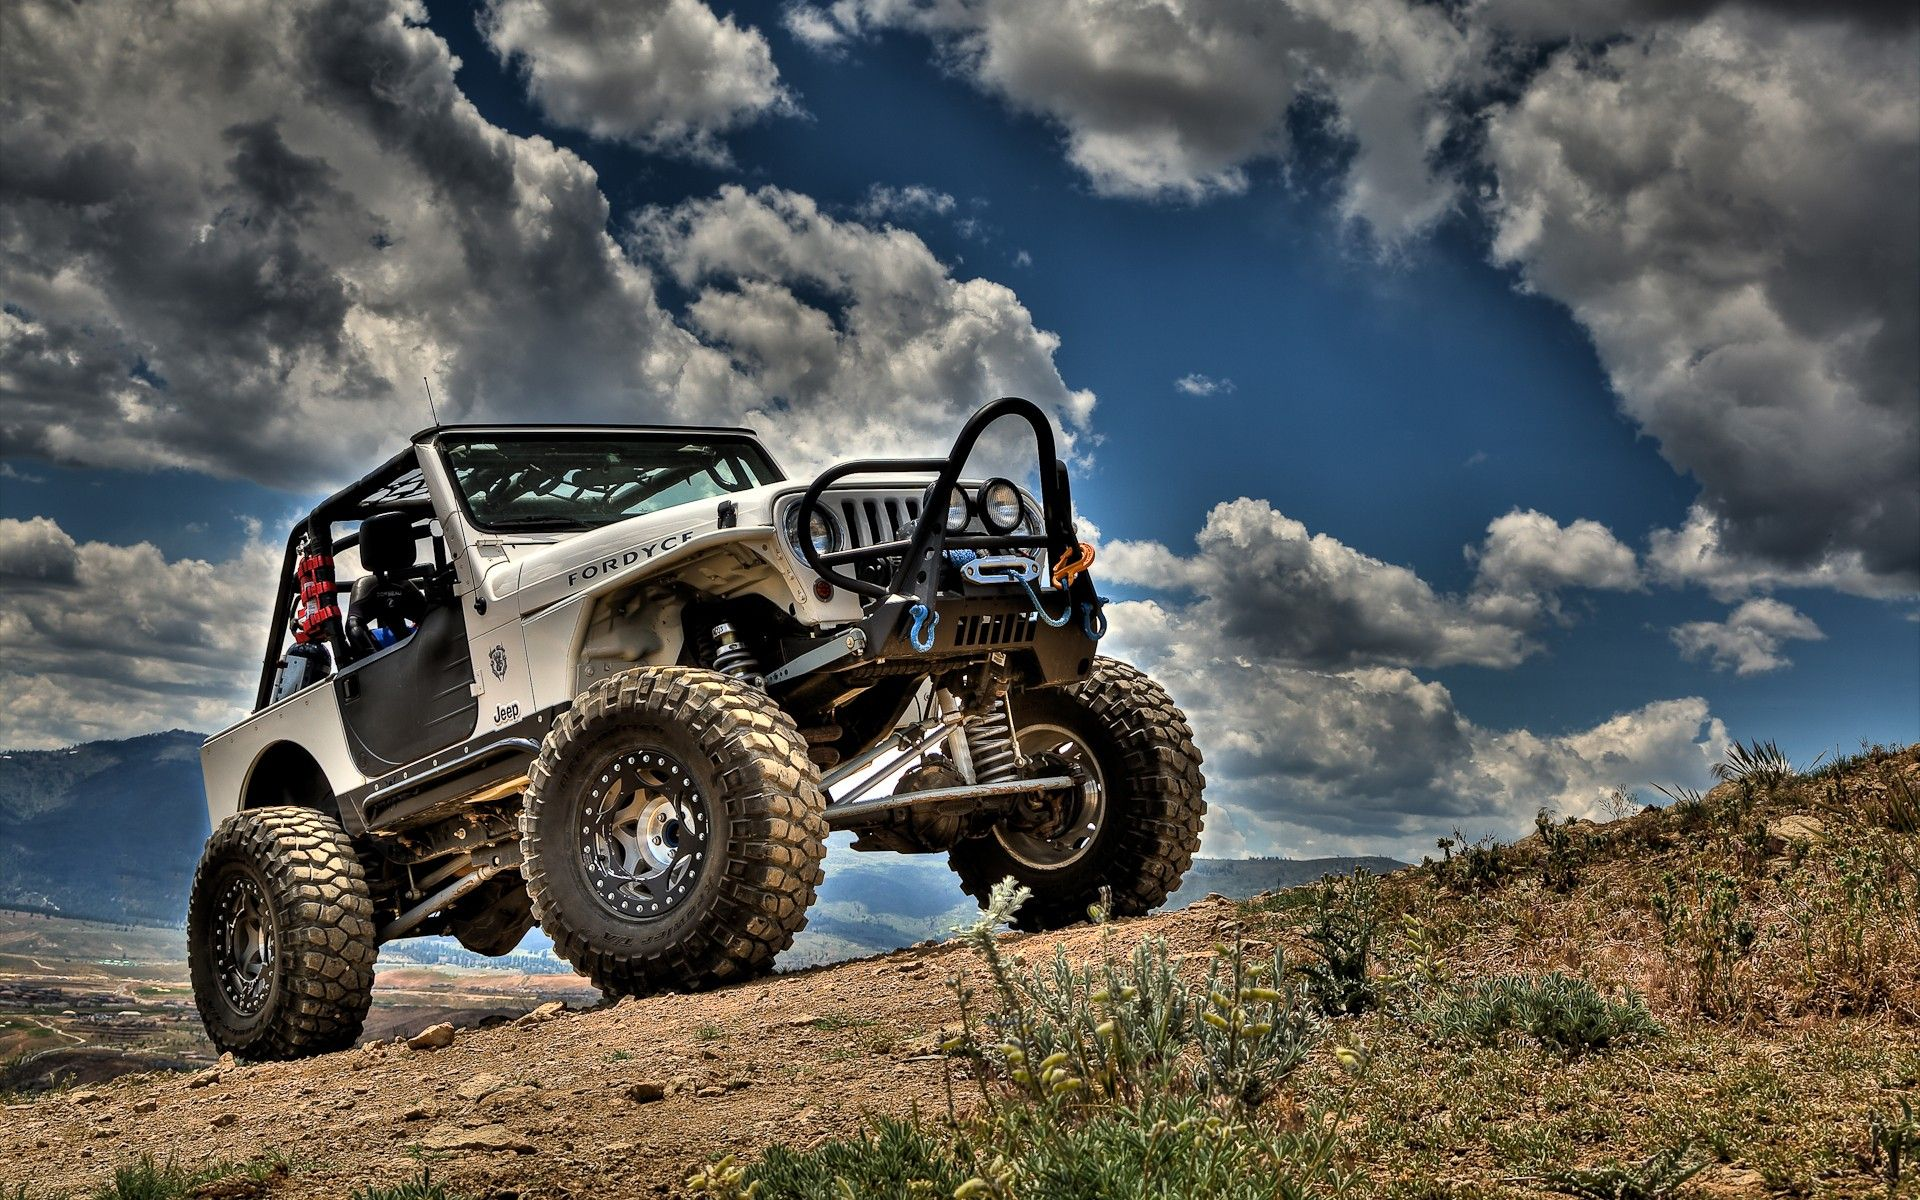 Nature Cars Jeep Hdr Photography Skyscapes Jeep Wrangler 1920x1200 Wallpaper Jeep Wallpaper Jeep Wrangler Jeep